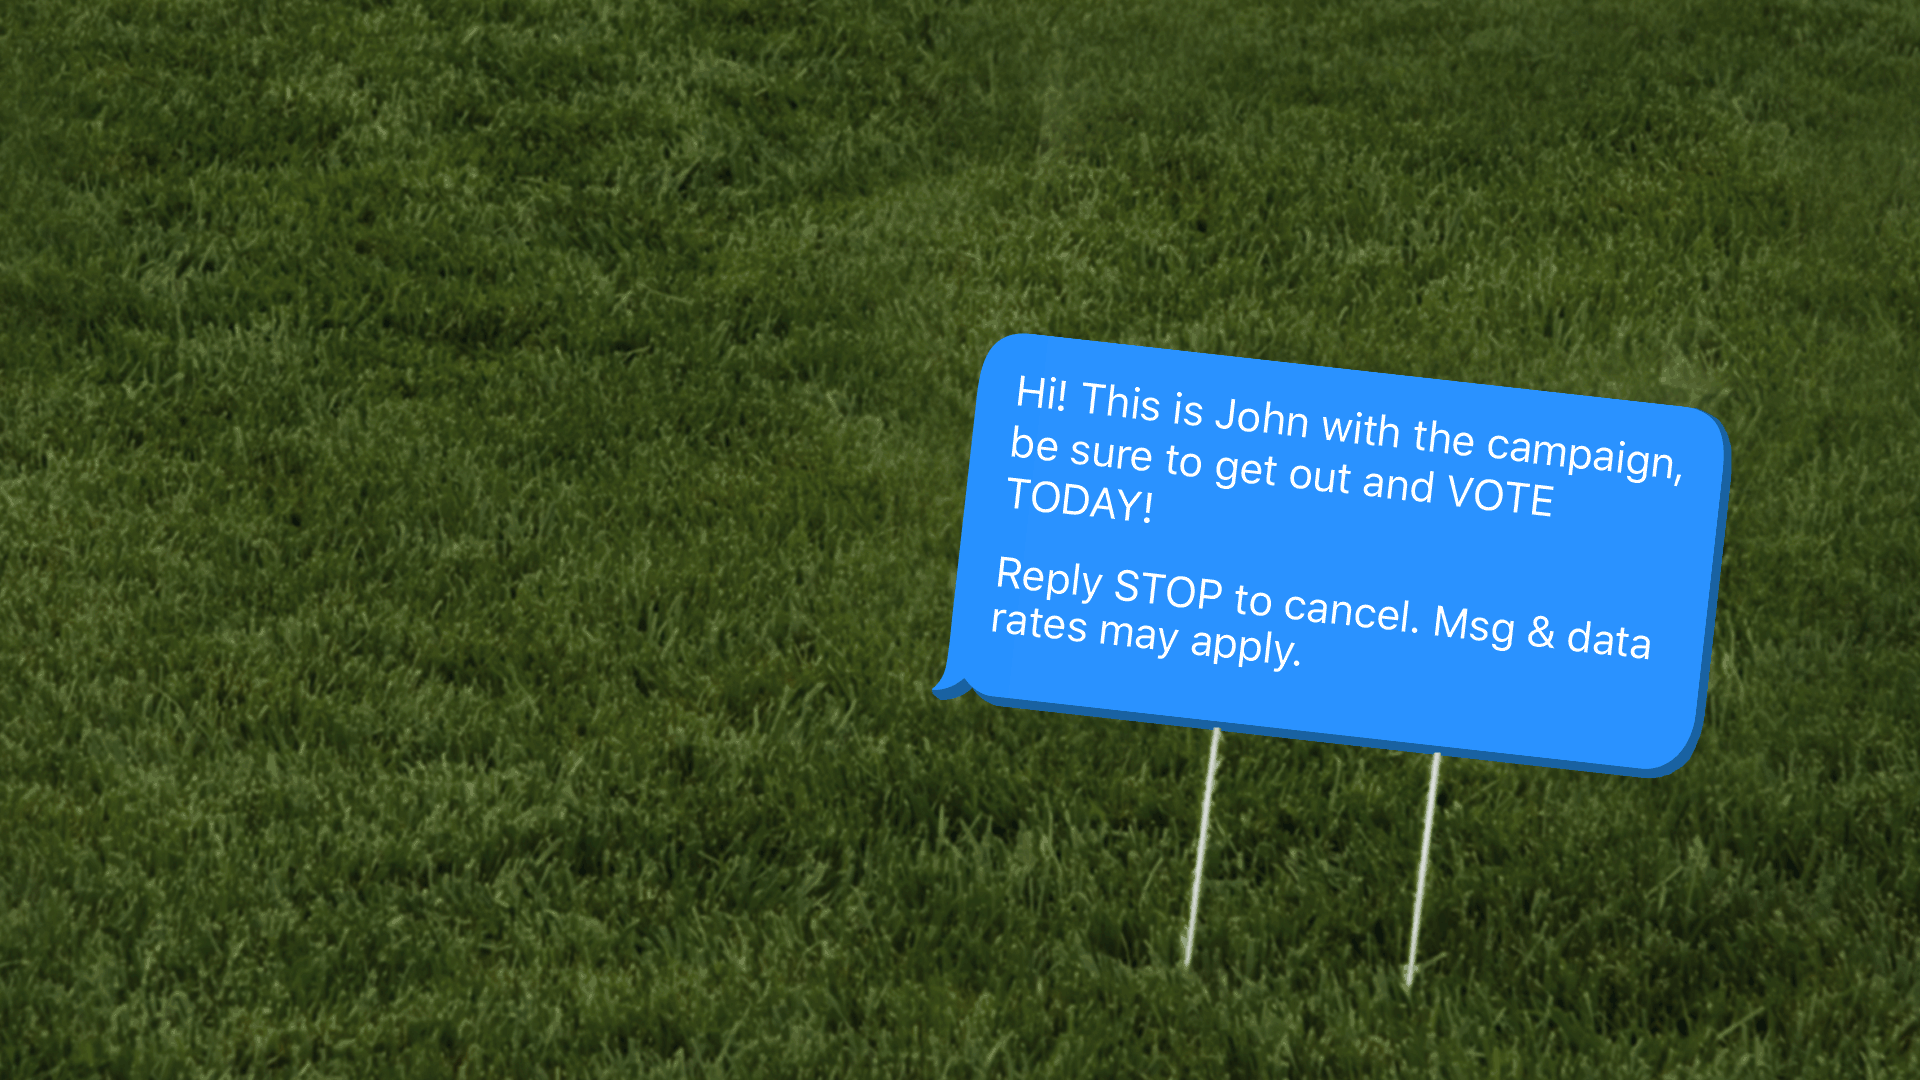 A text message as a political lawn sign